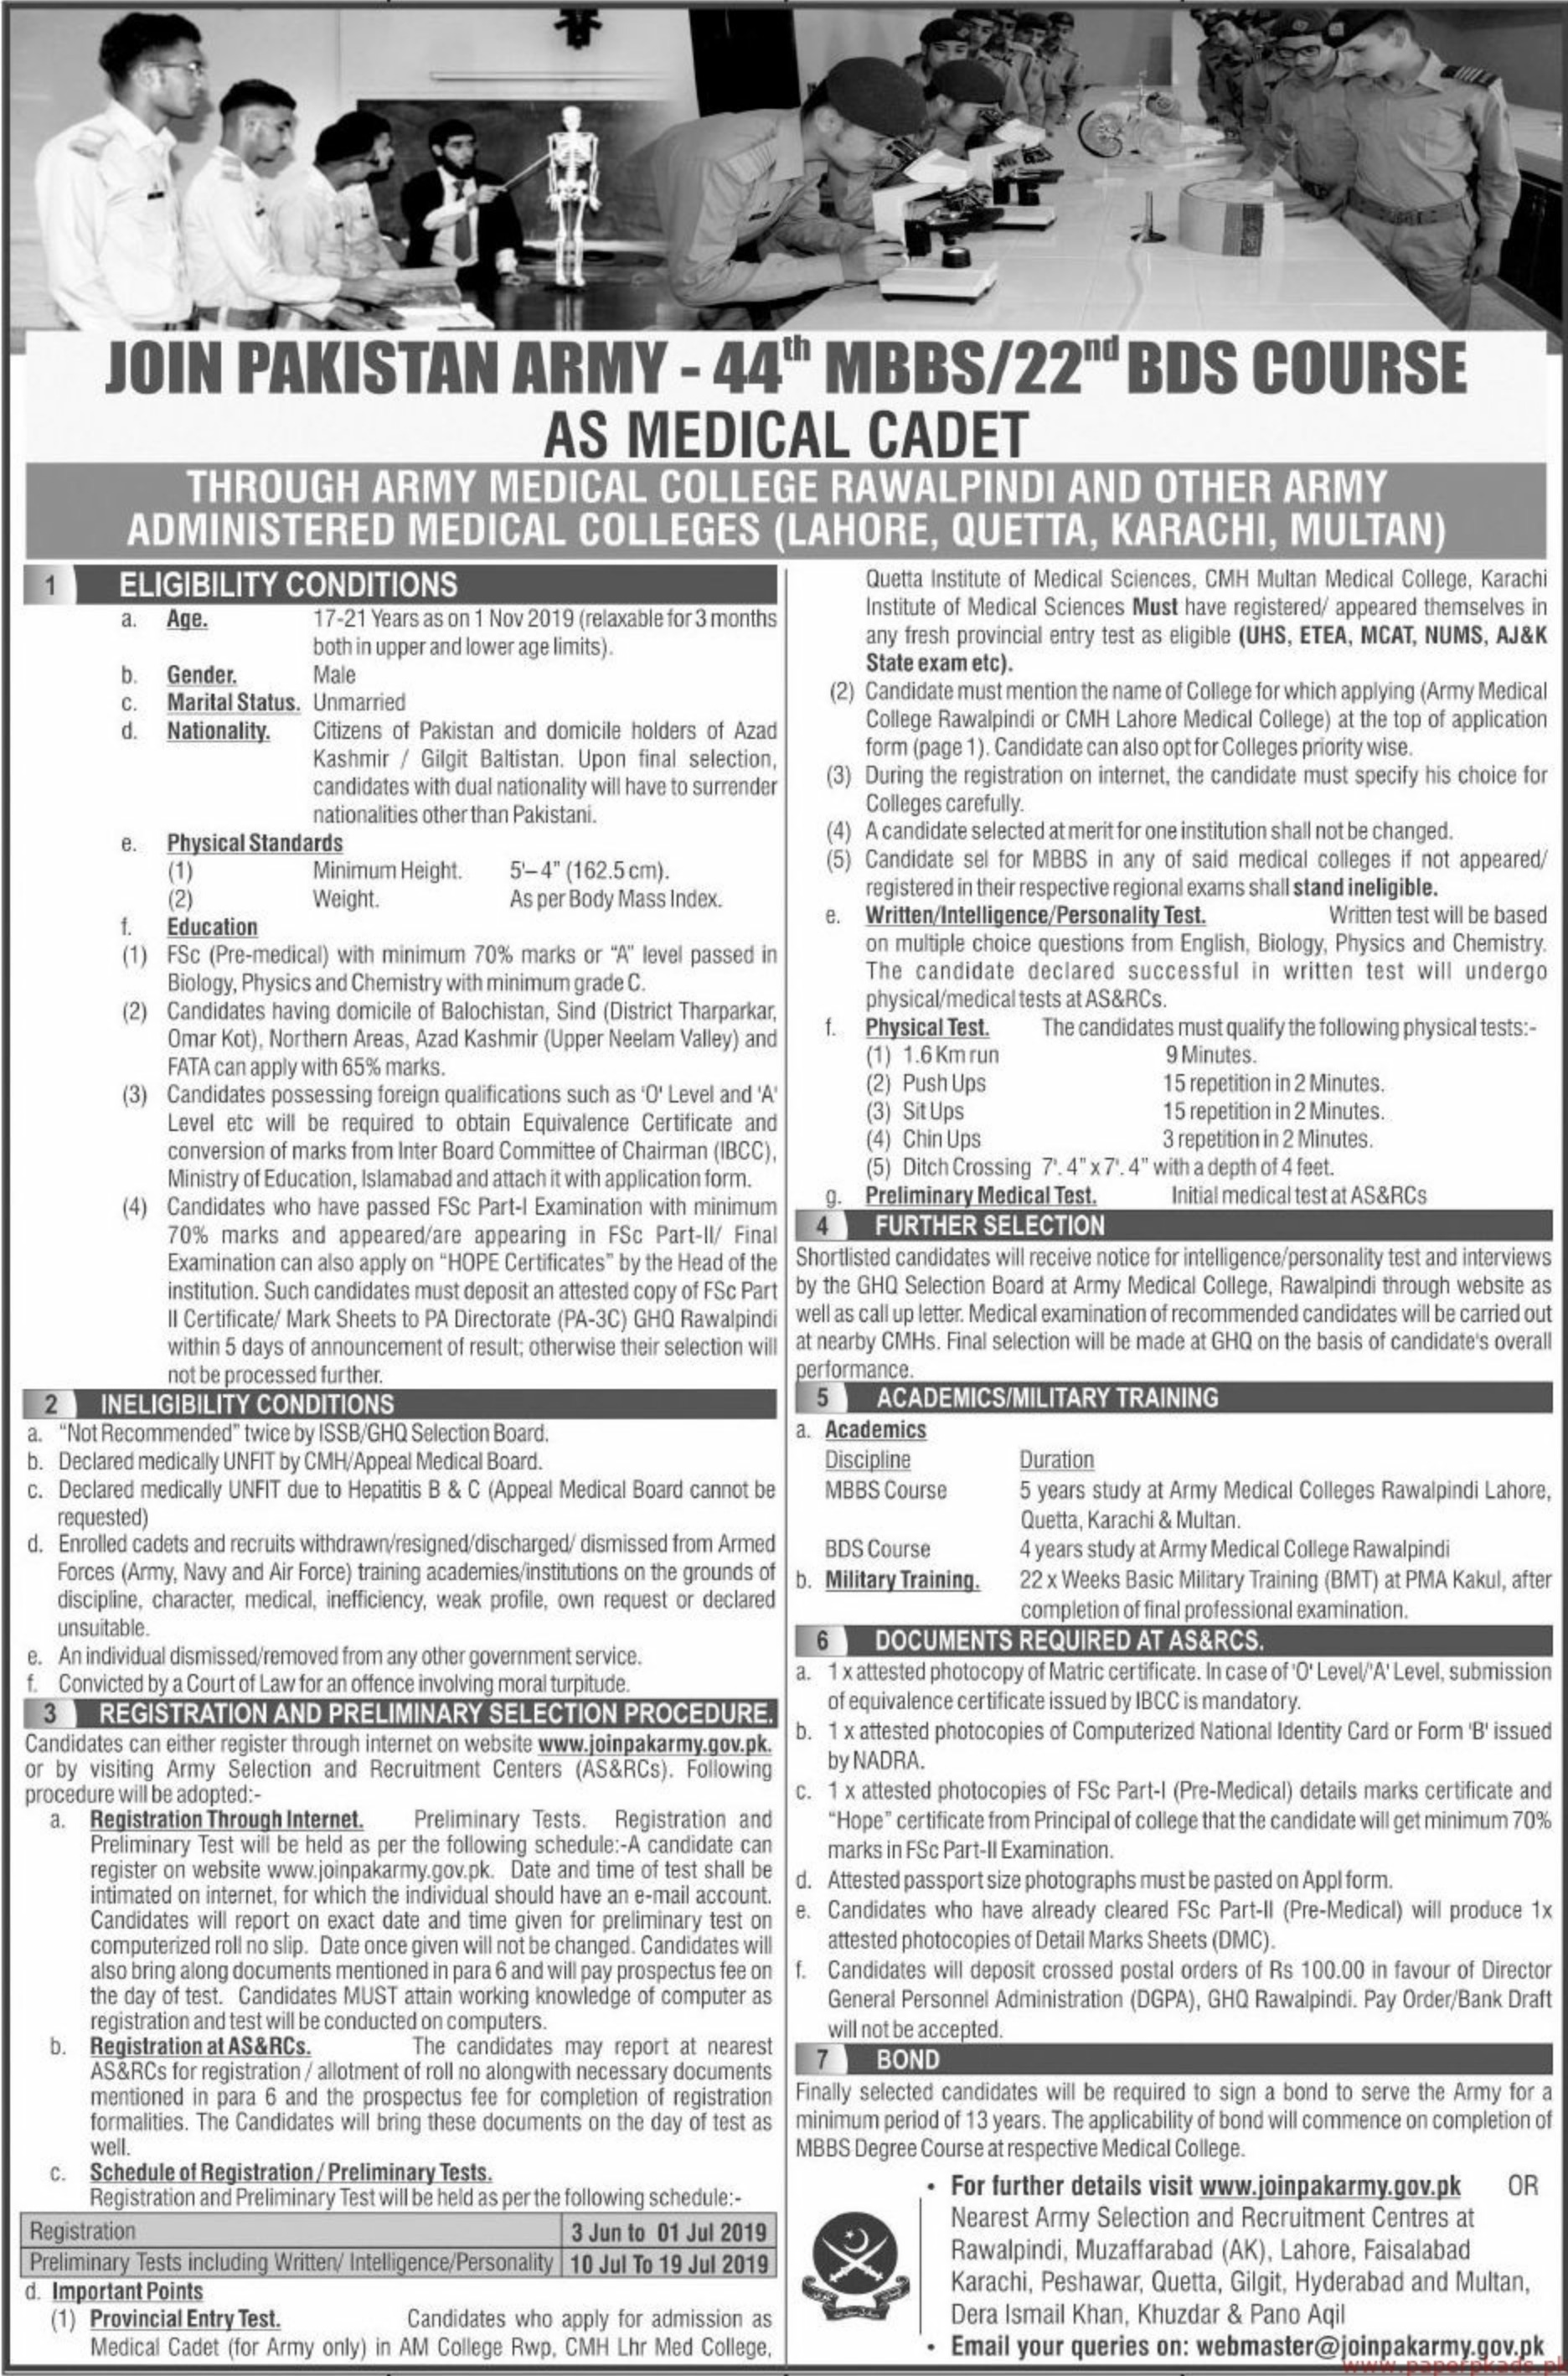 Join Pakistan Army as Medical Cadet 2019